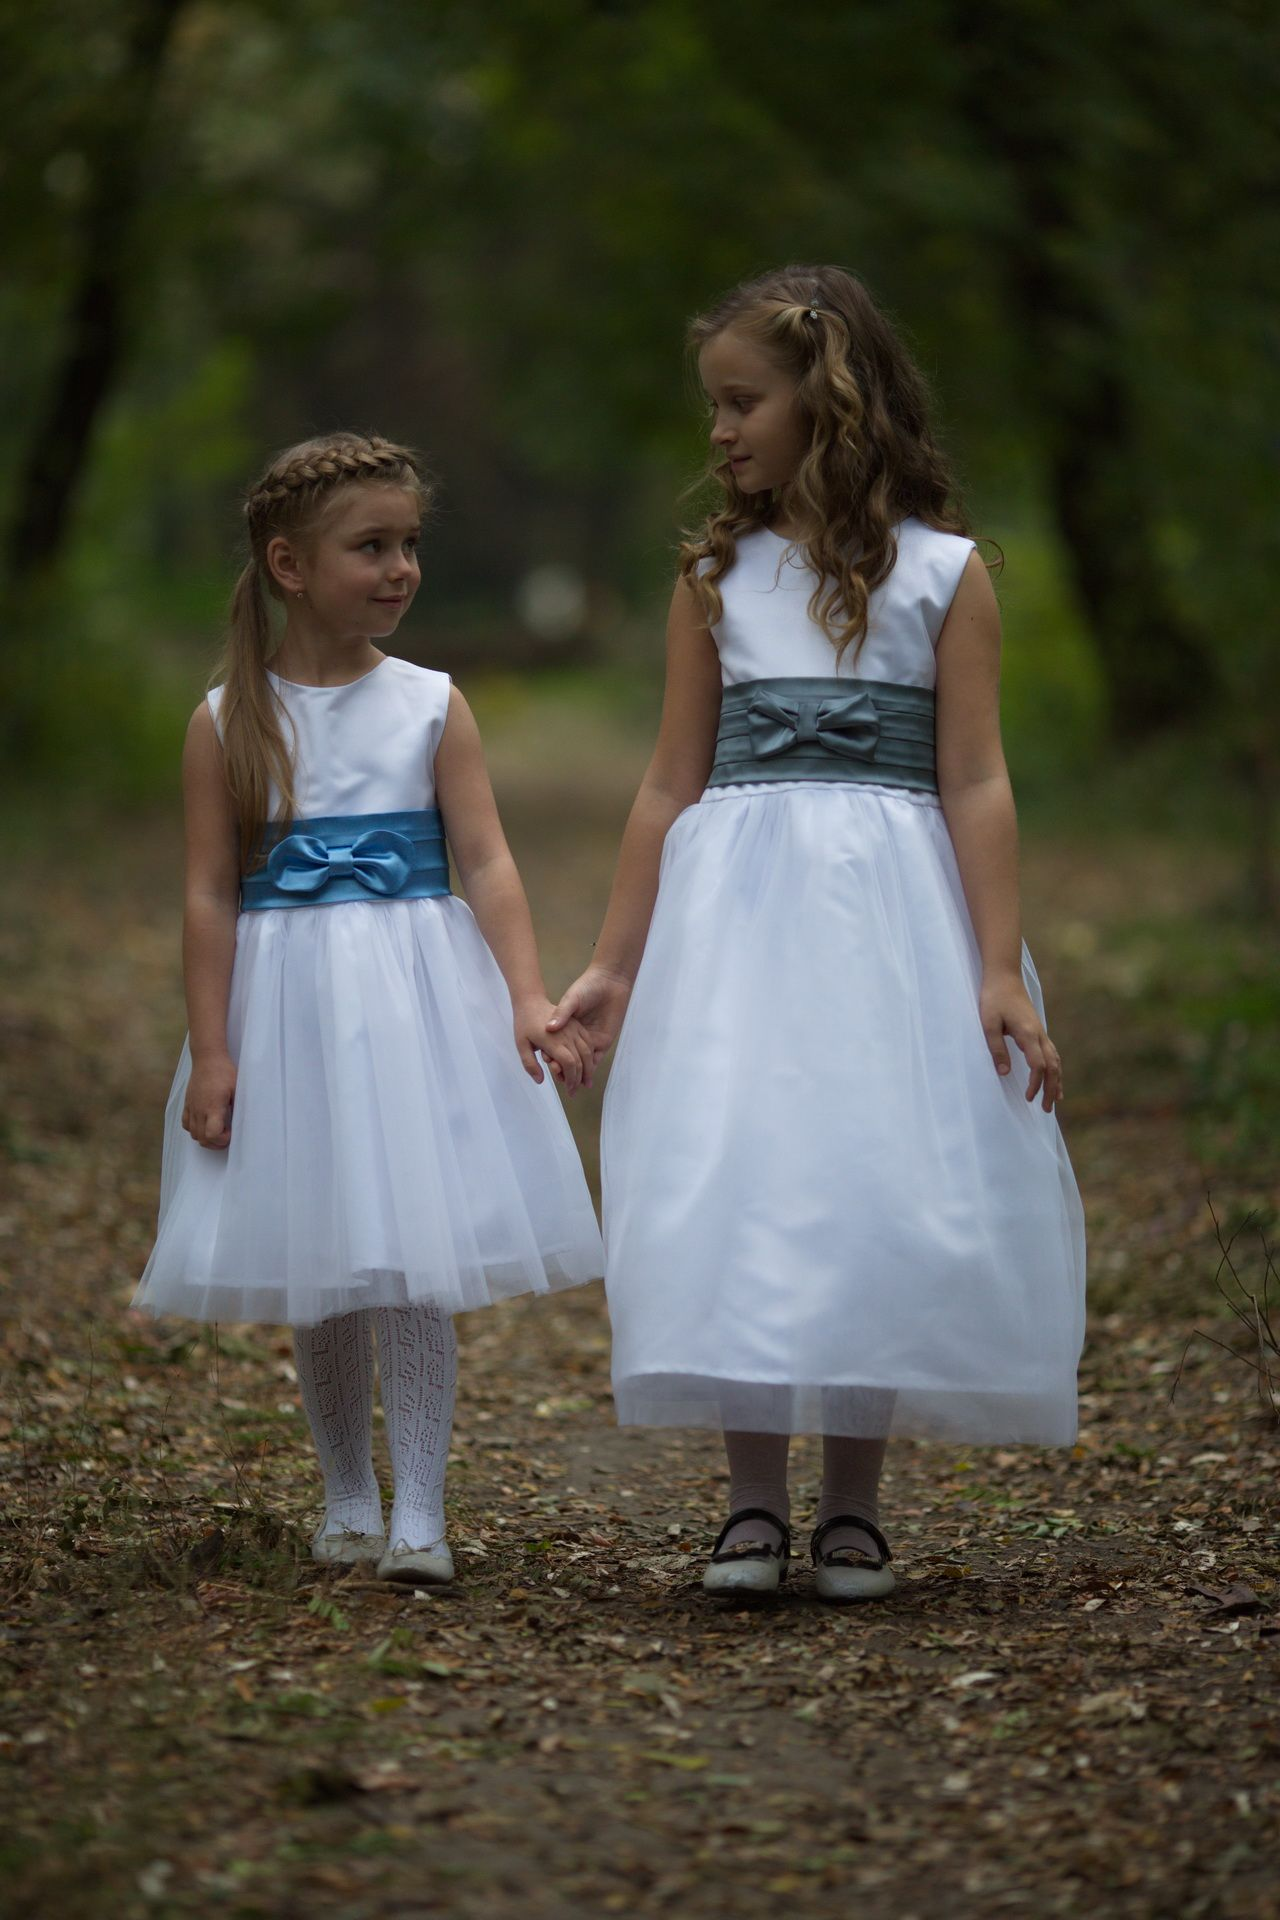 White And Blue Amazing Dress For A Real Little Bride A Flower